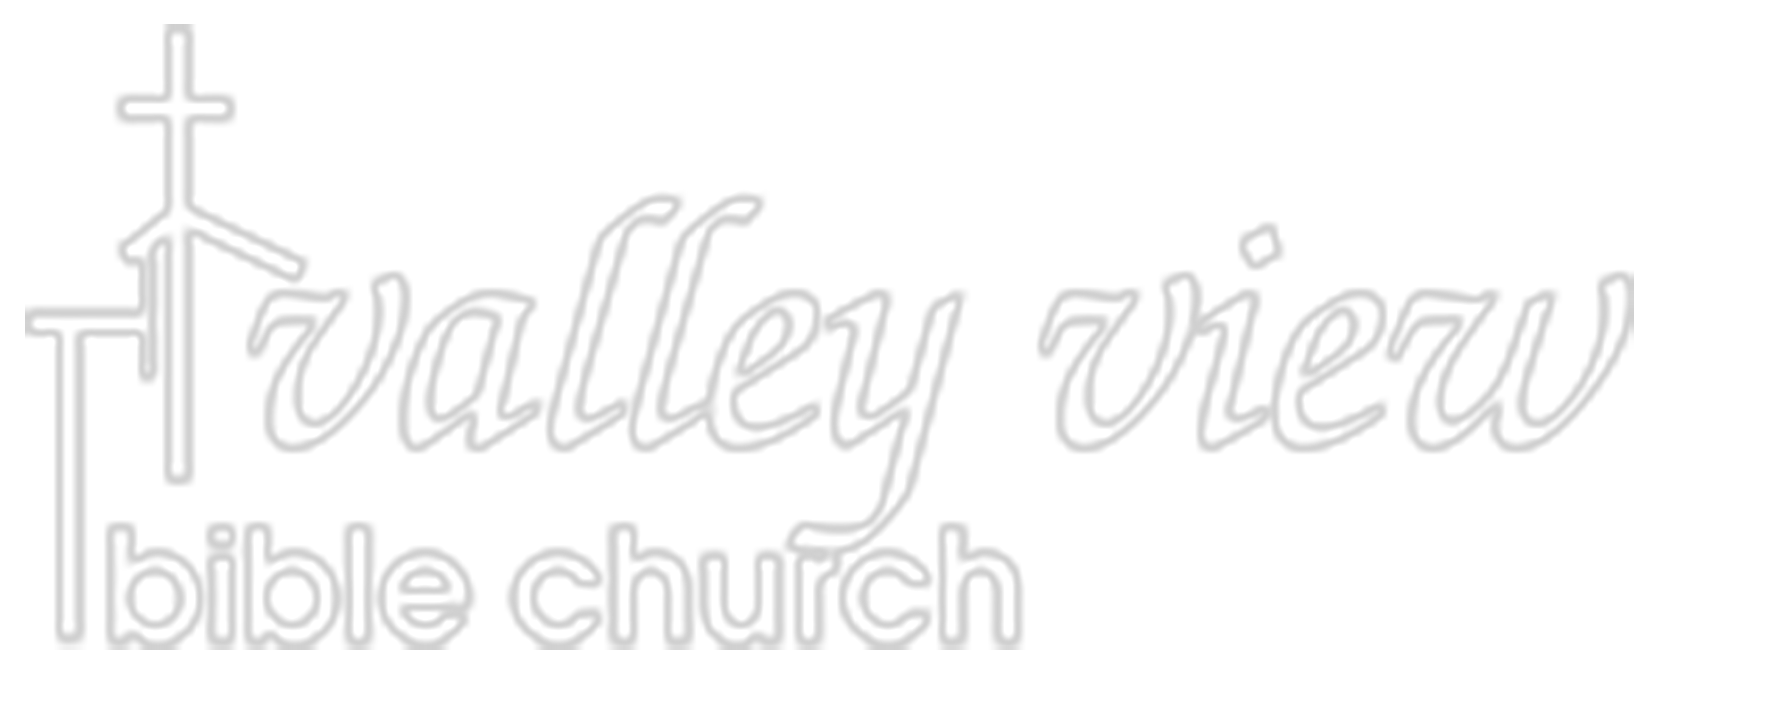 Valley View Bible Church | non-denominational church in Paradise Valley, AZ